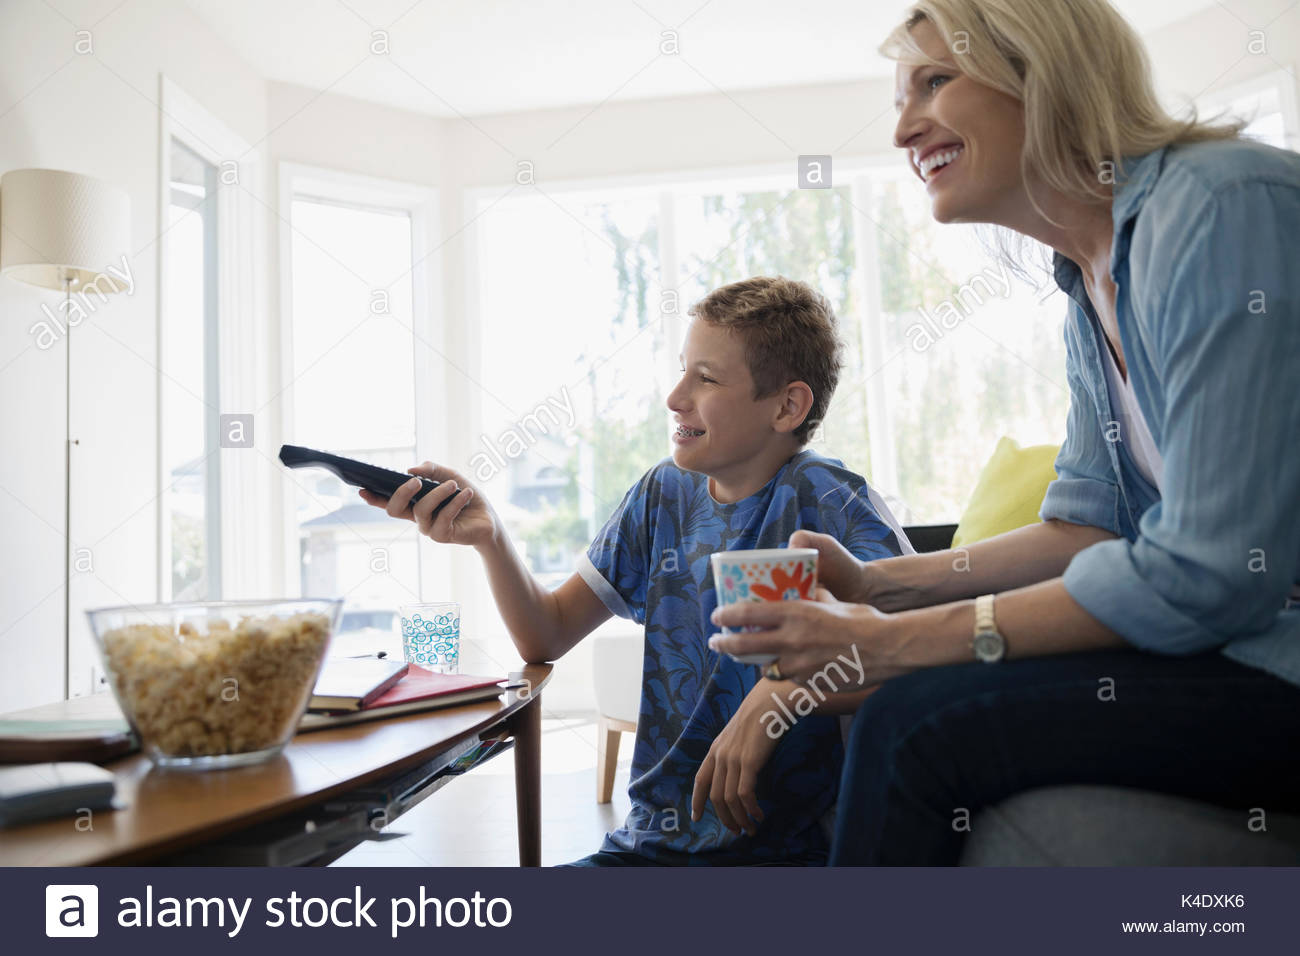 Mother and pre-adolescent son watching TV and eating popcorn in living room - Stock Image